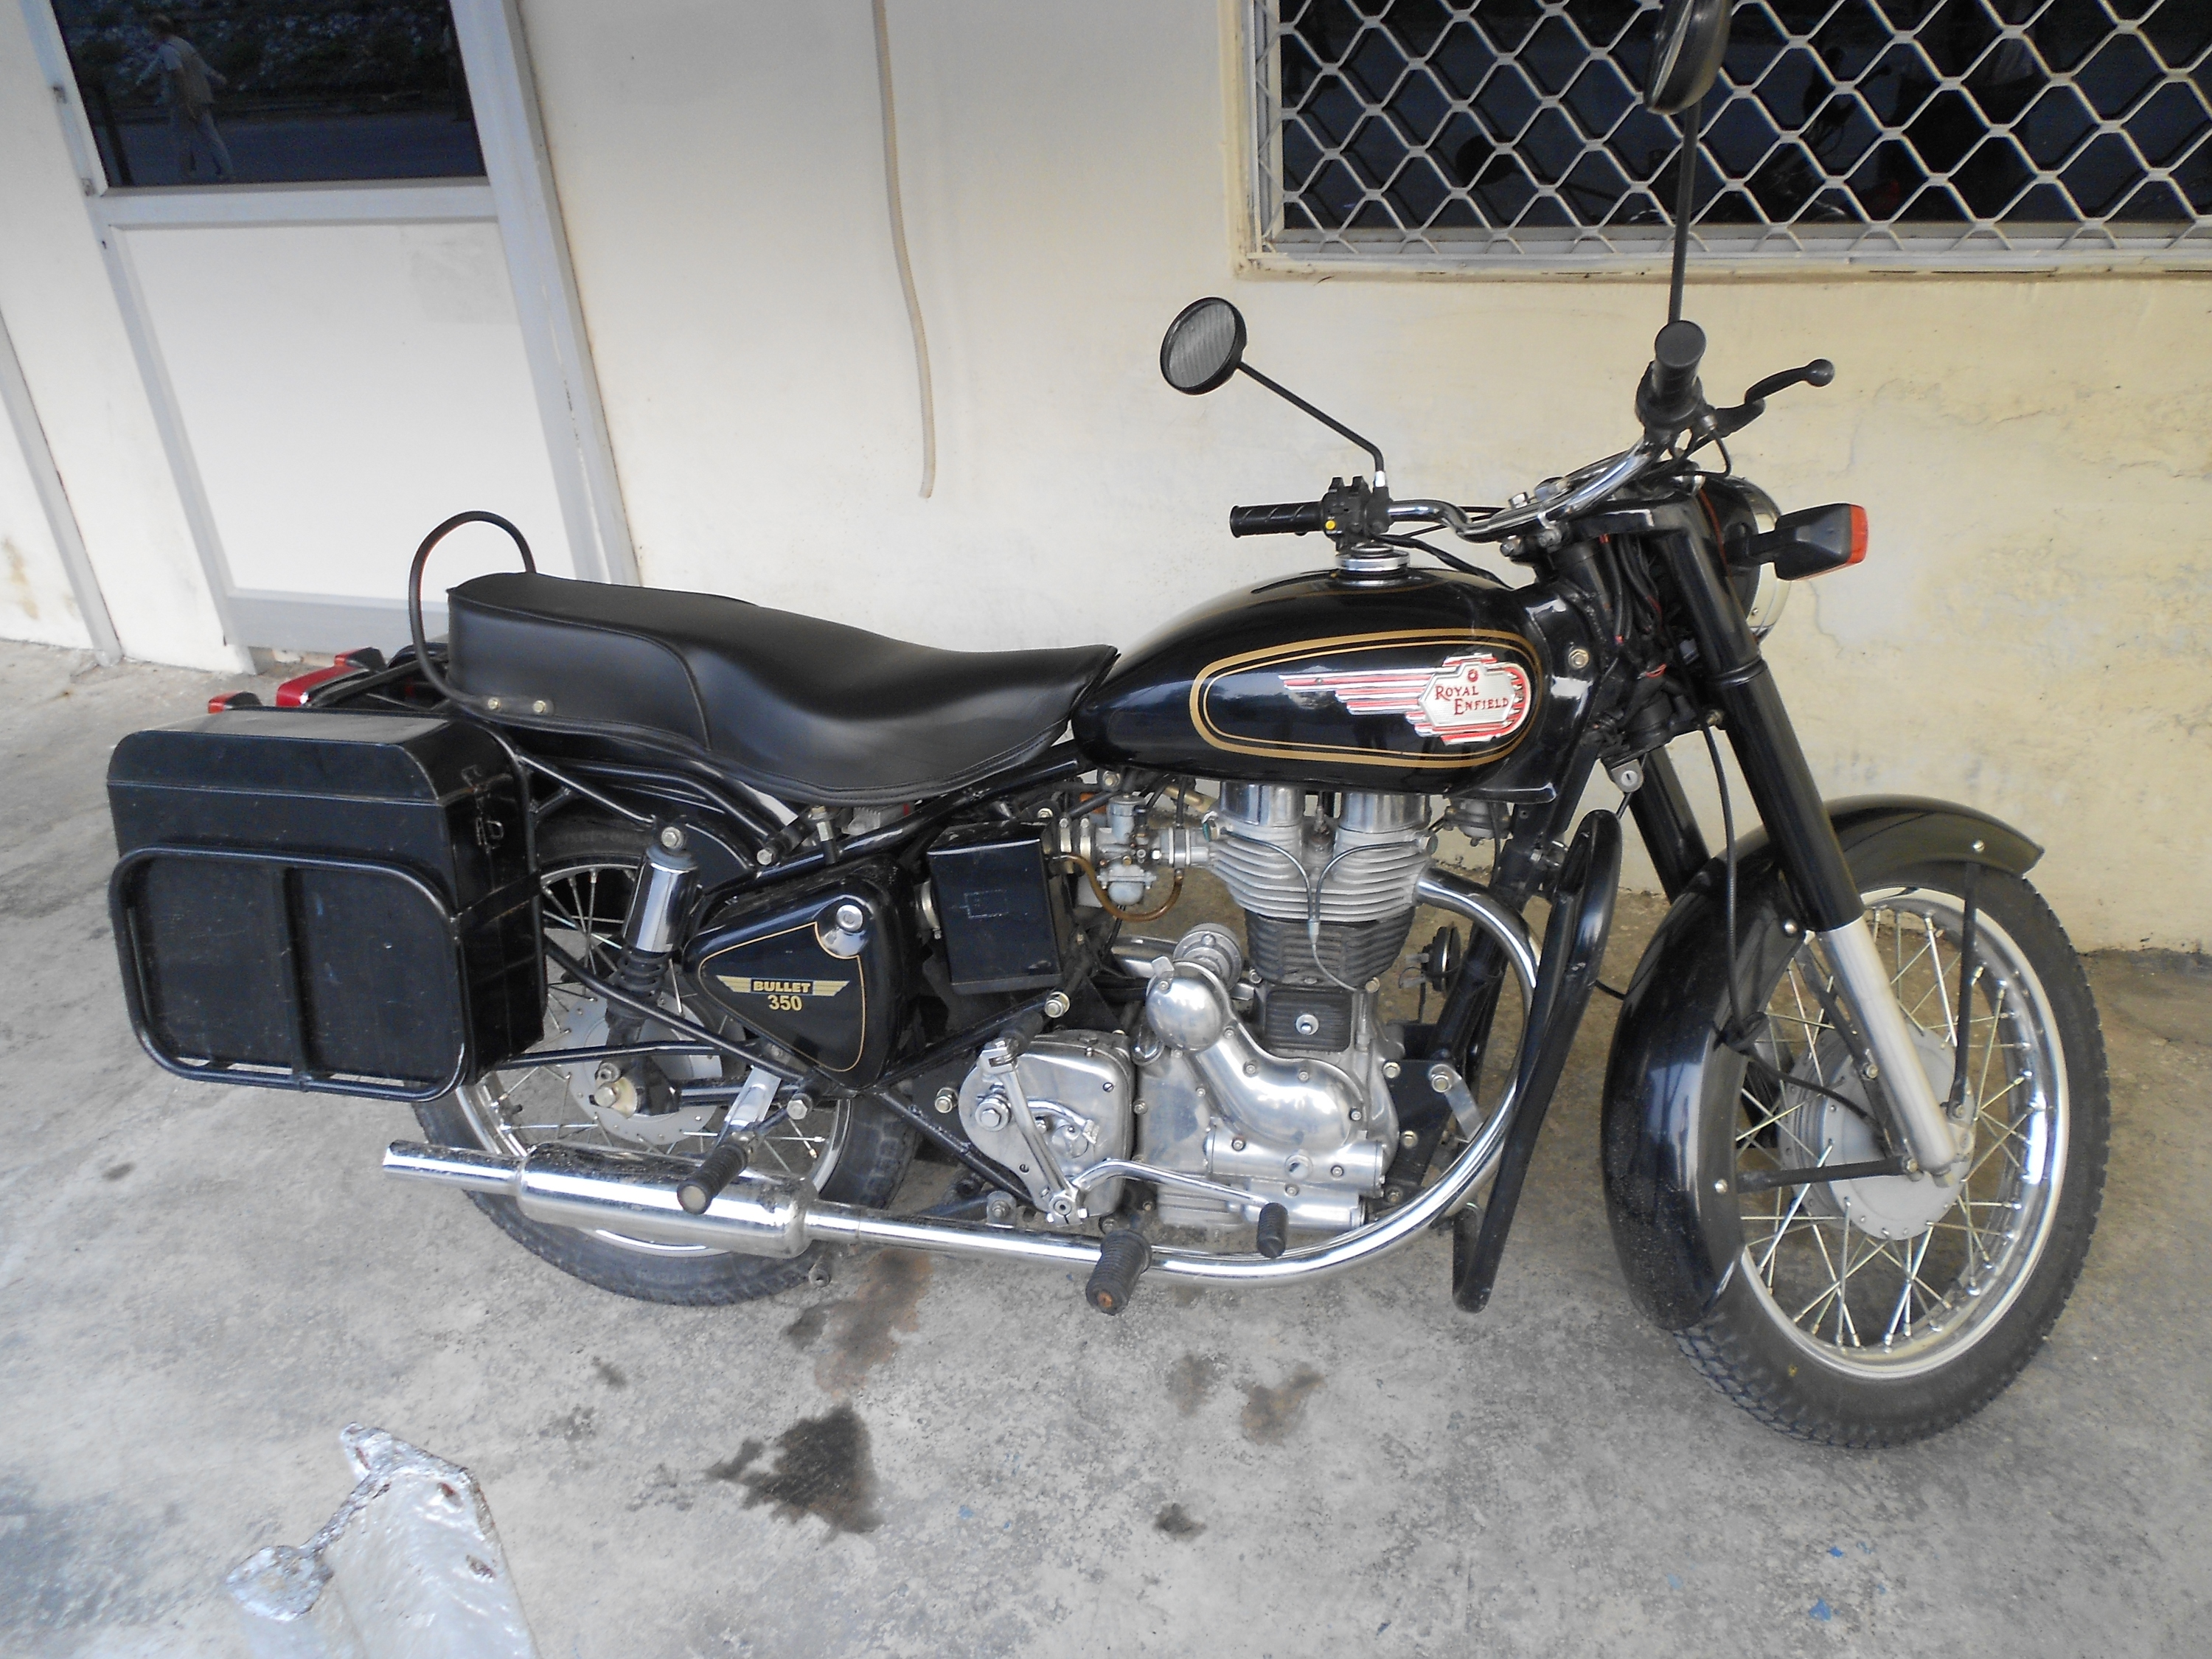 Royal Enfield Bullet 350 Army 1999 images #122857